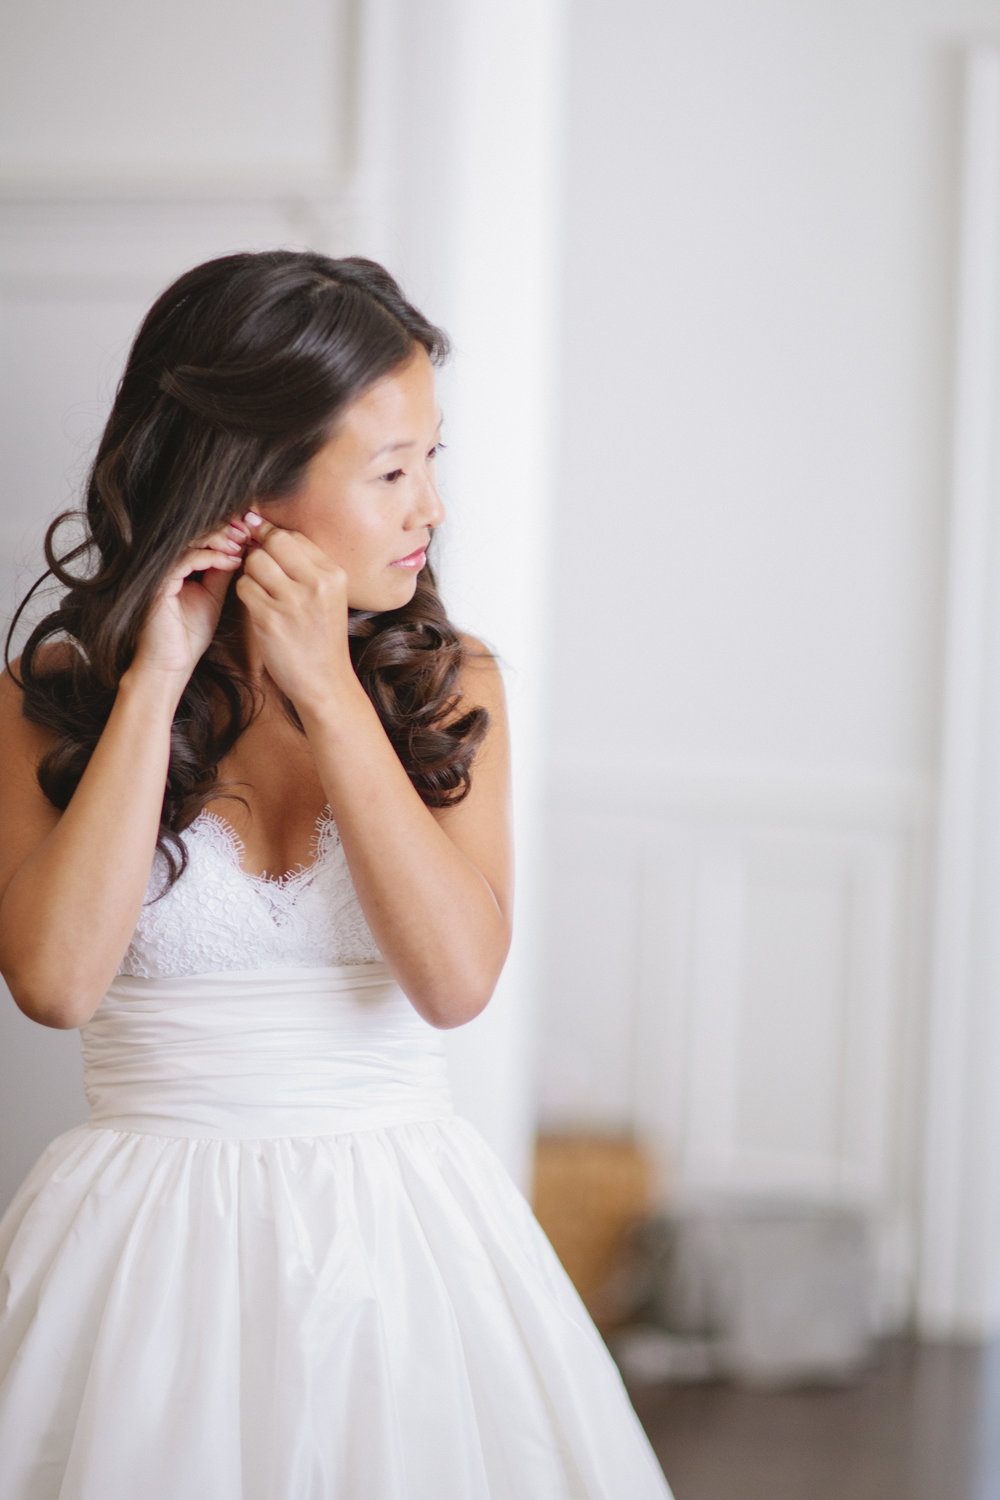 Picture of a bride getting ready on her wedding day.  She has long cascading curls and is putting on an earring.